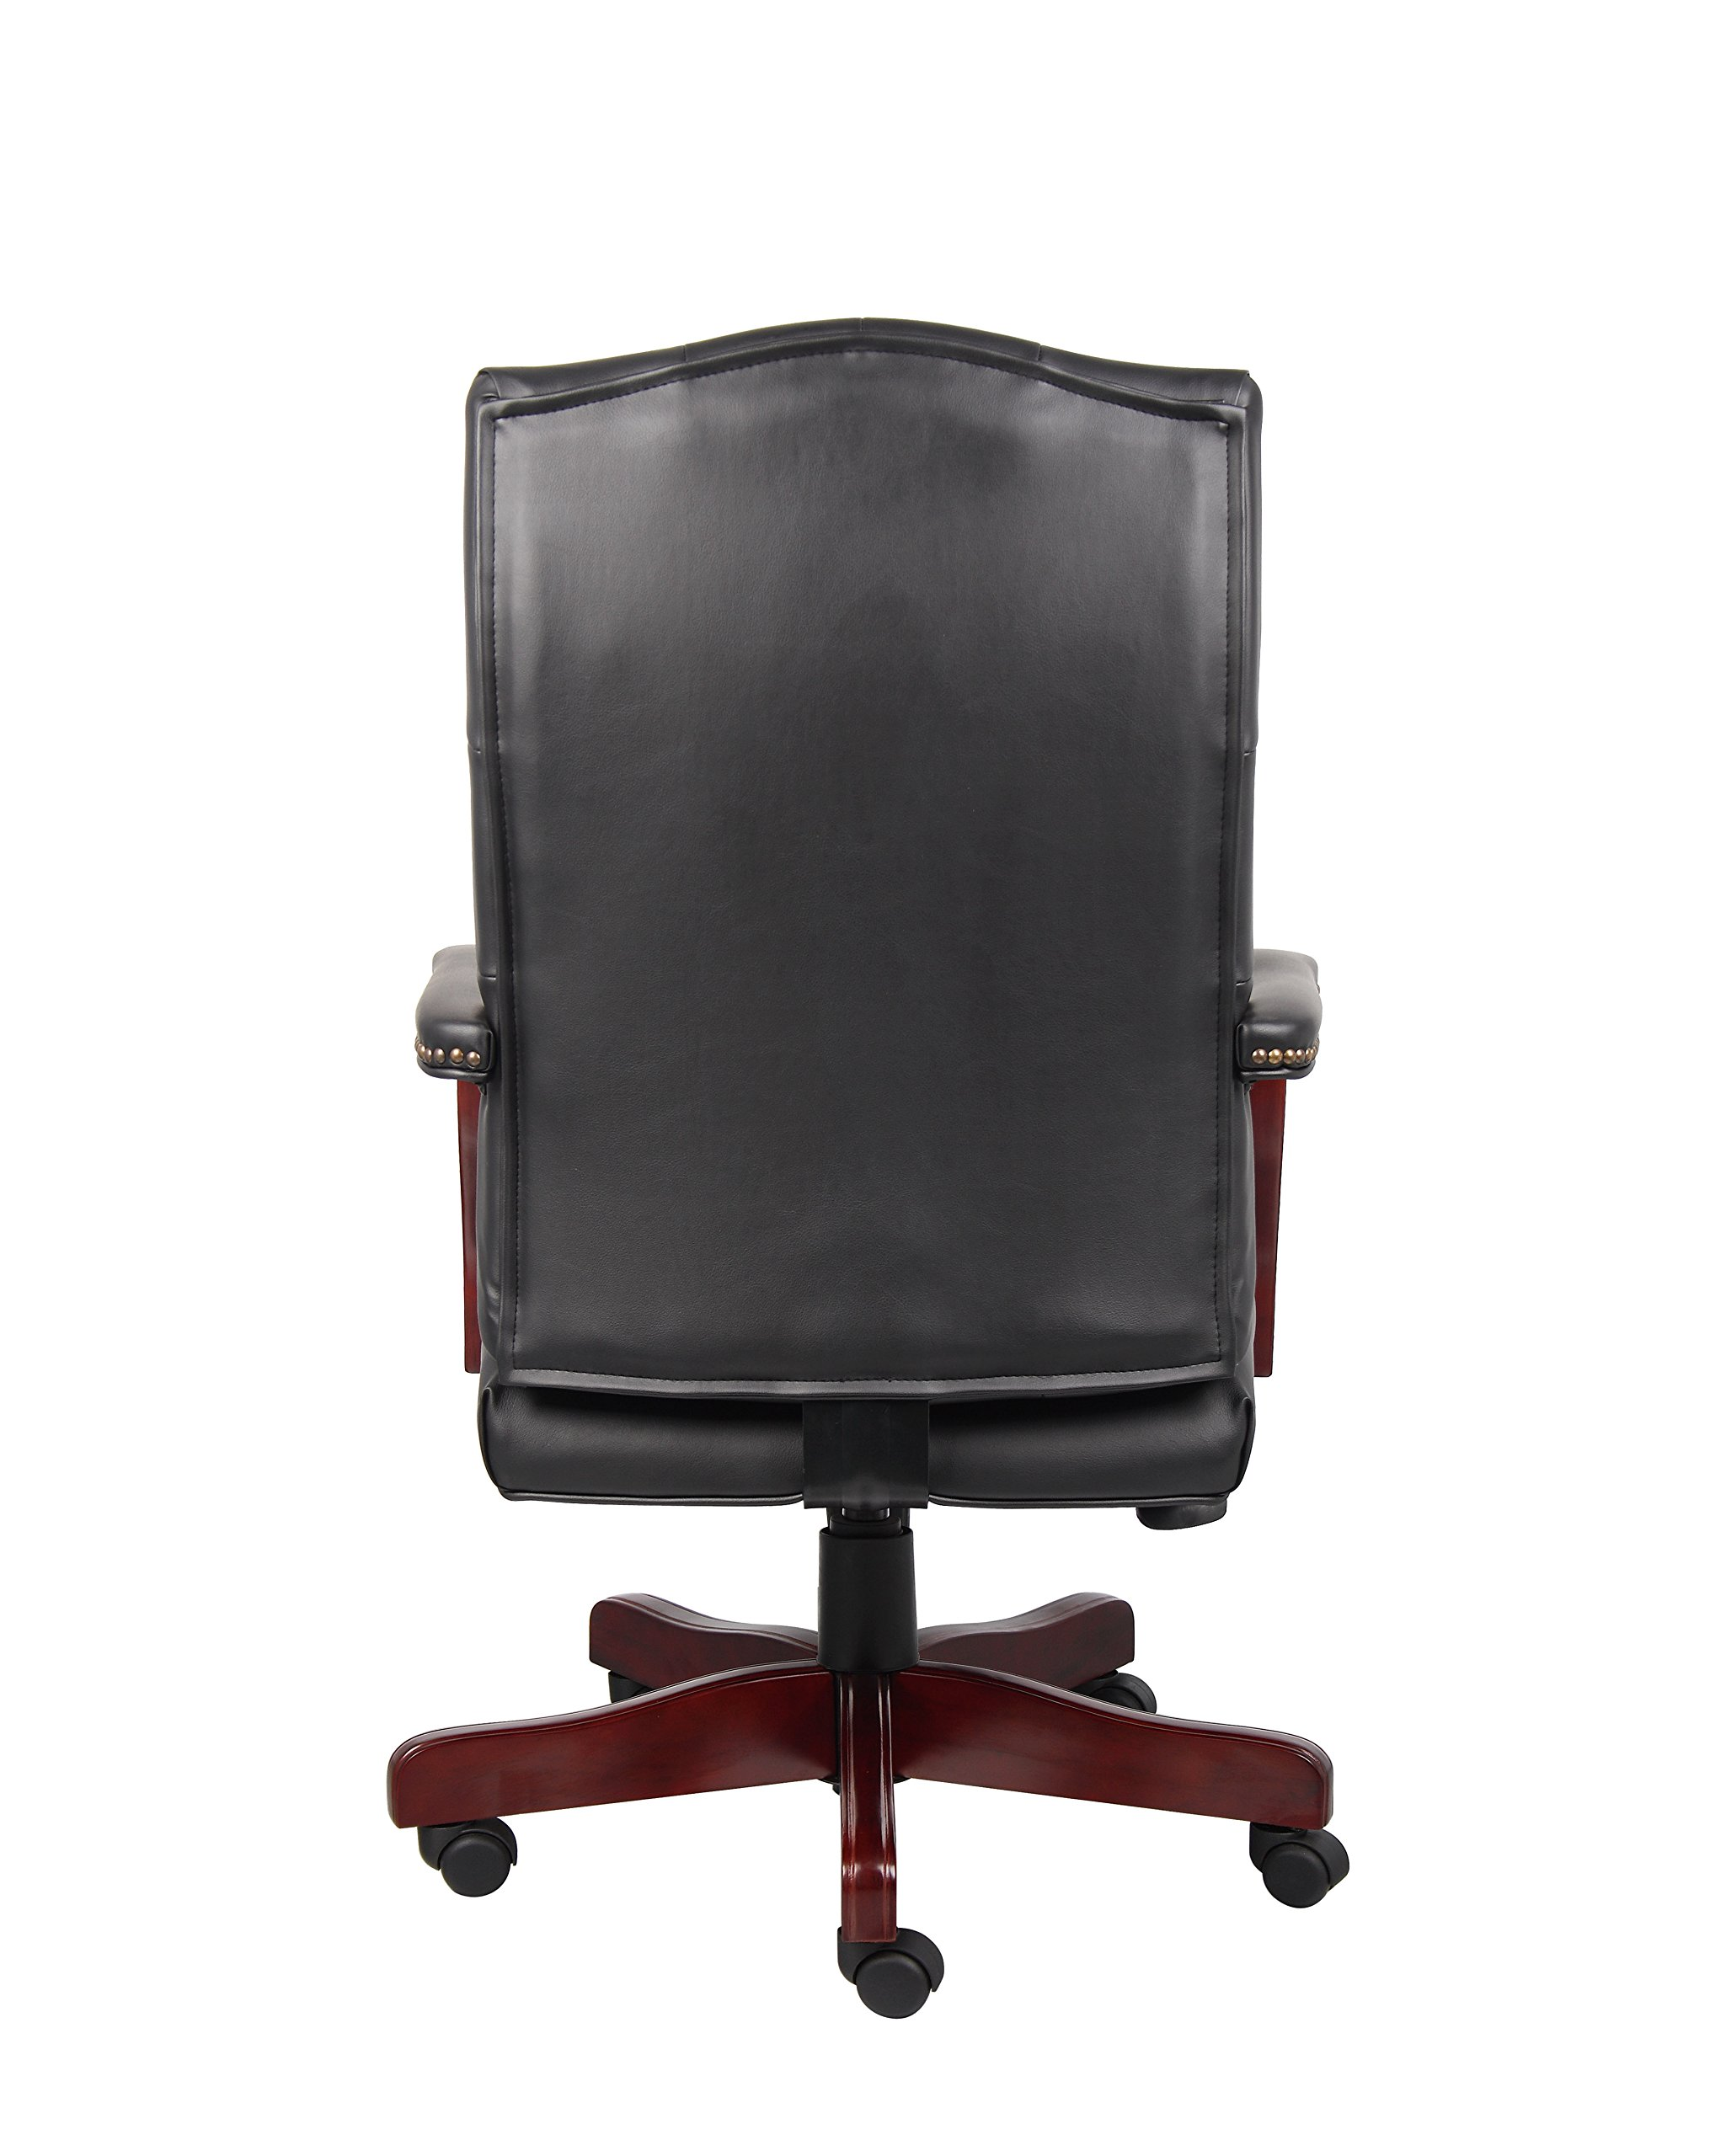 Boss Office Products Classic Executive Caressoft Chair with Mahogany Finish in Black